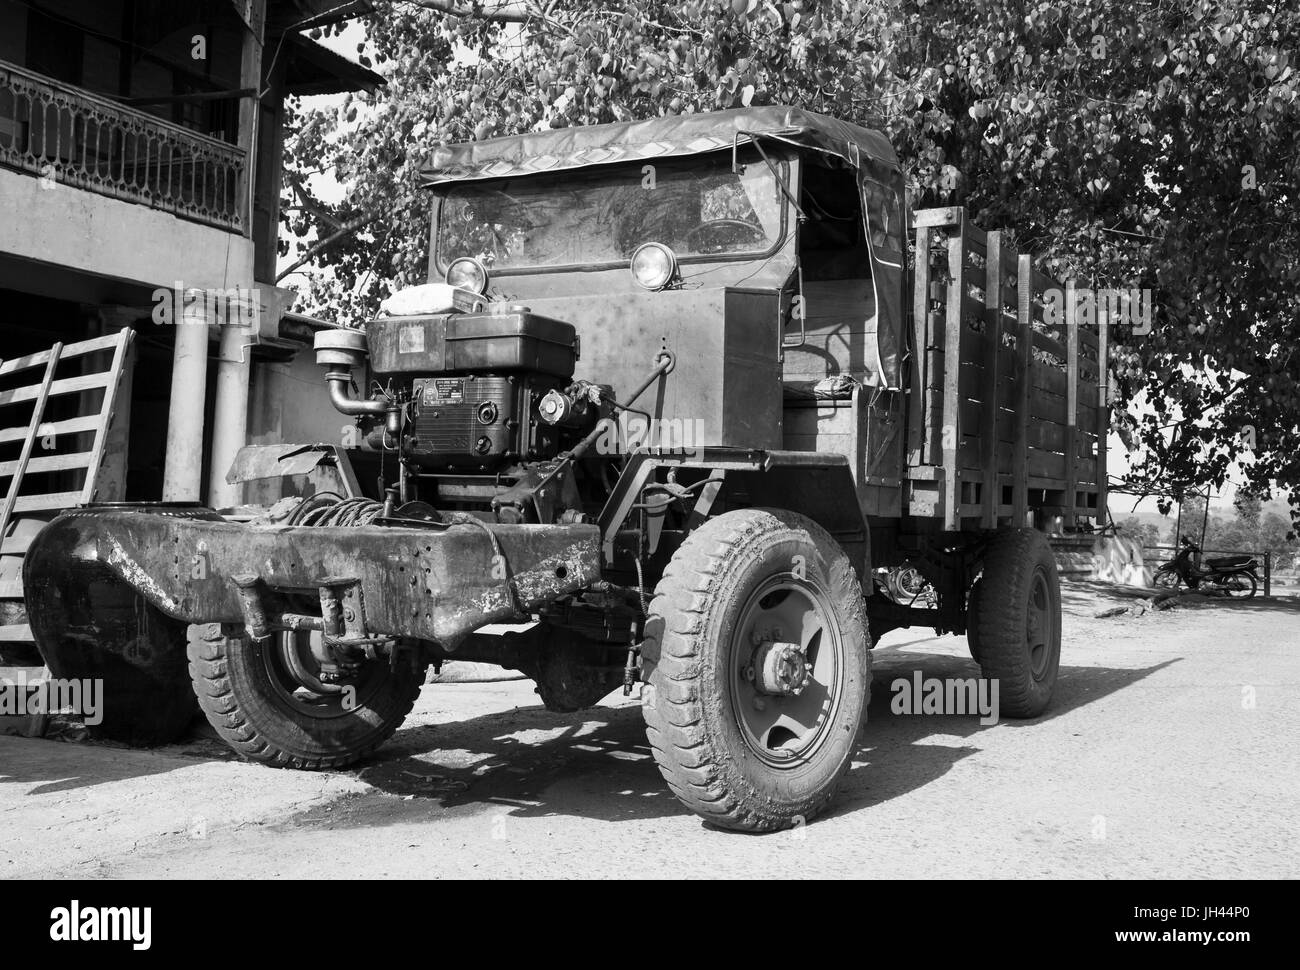 Vintage truck still in widespread use today in Myanmar. Modified from a WW2 ex British army Canadian Military - Stock Image